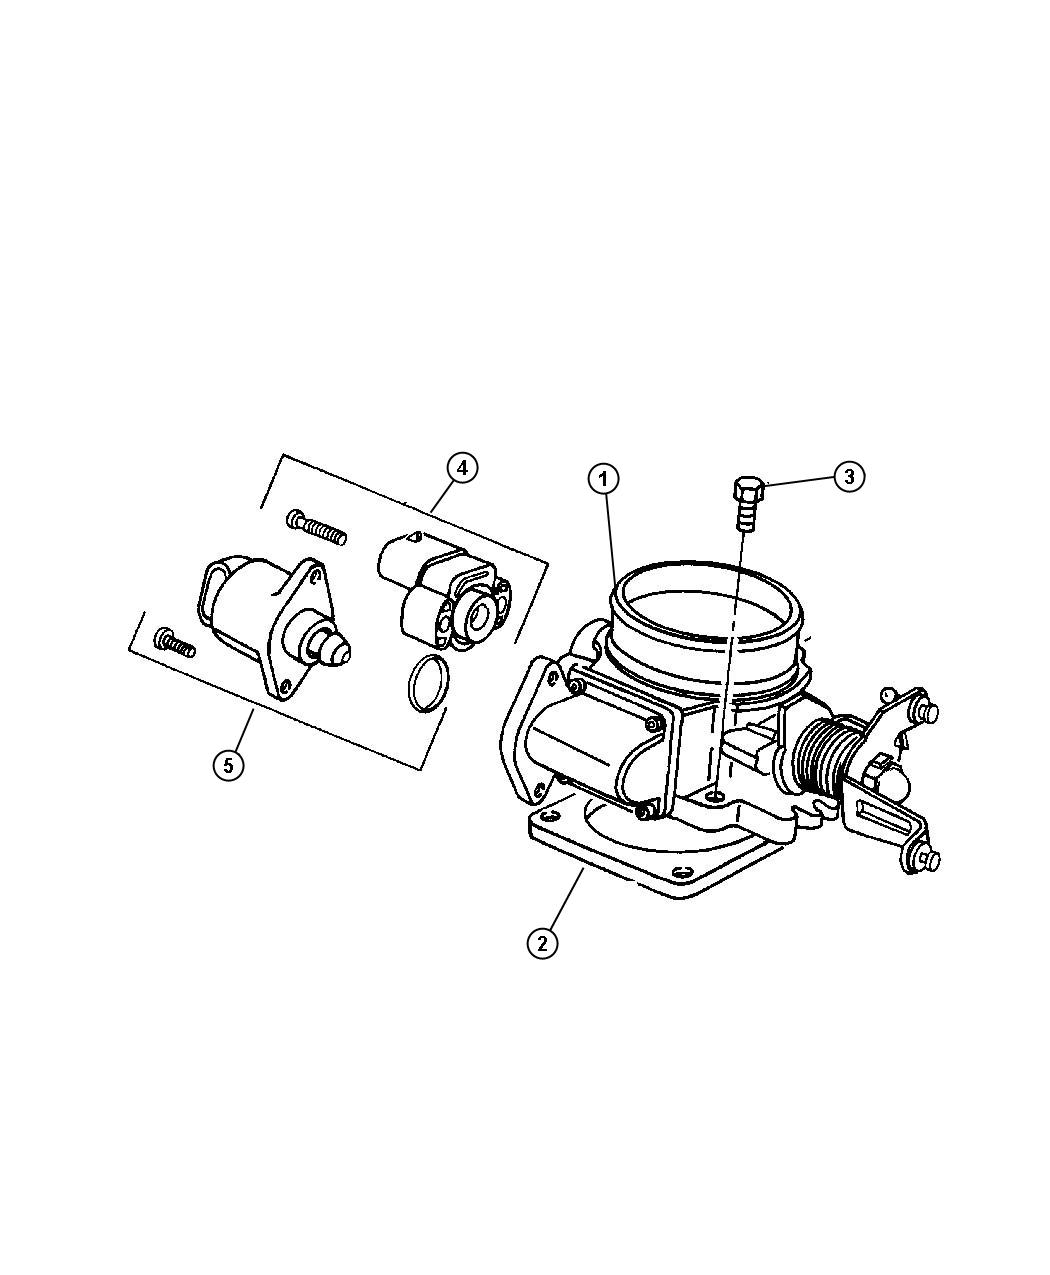 Jeep Liberty Motor A I S Air Idle Speed Throttle Body